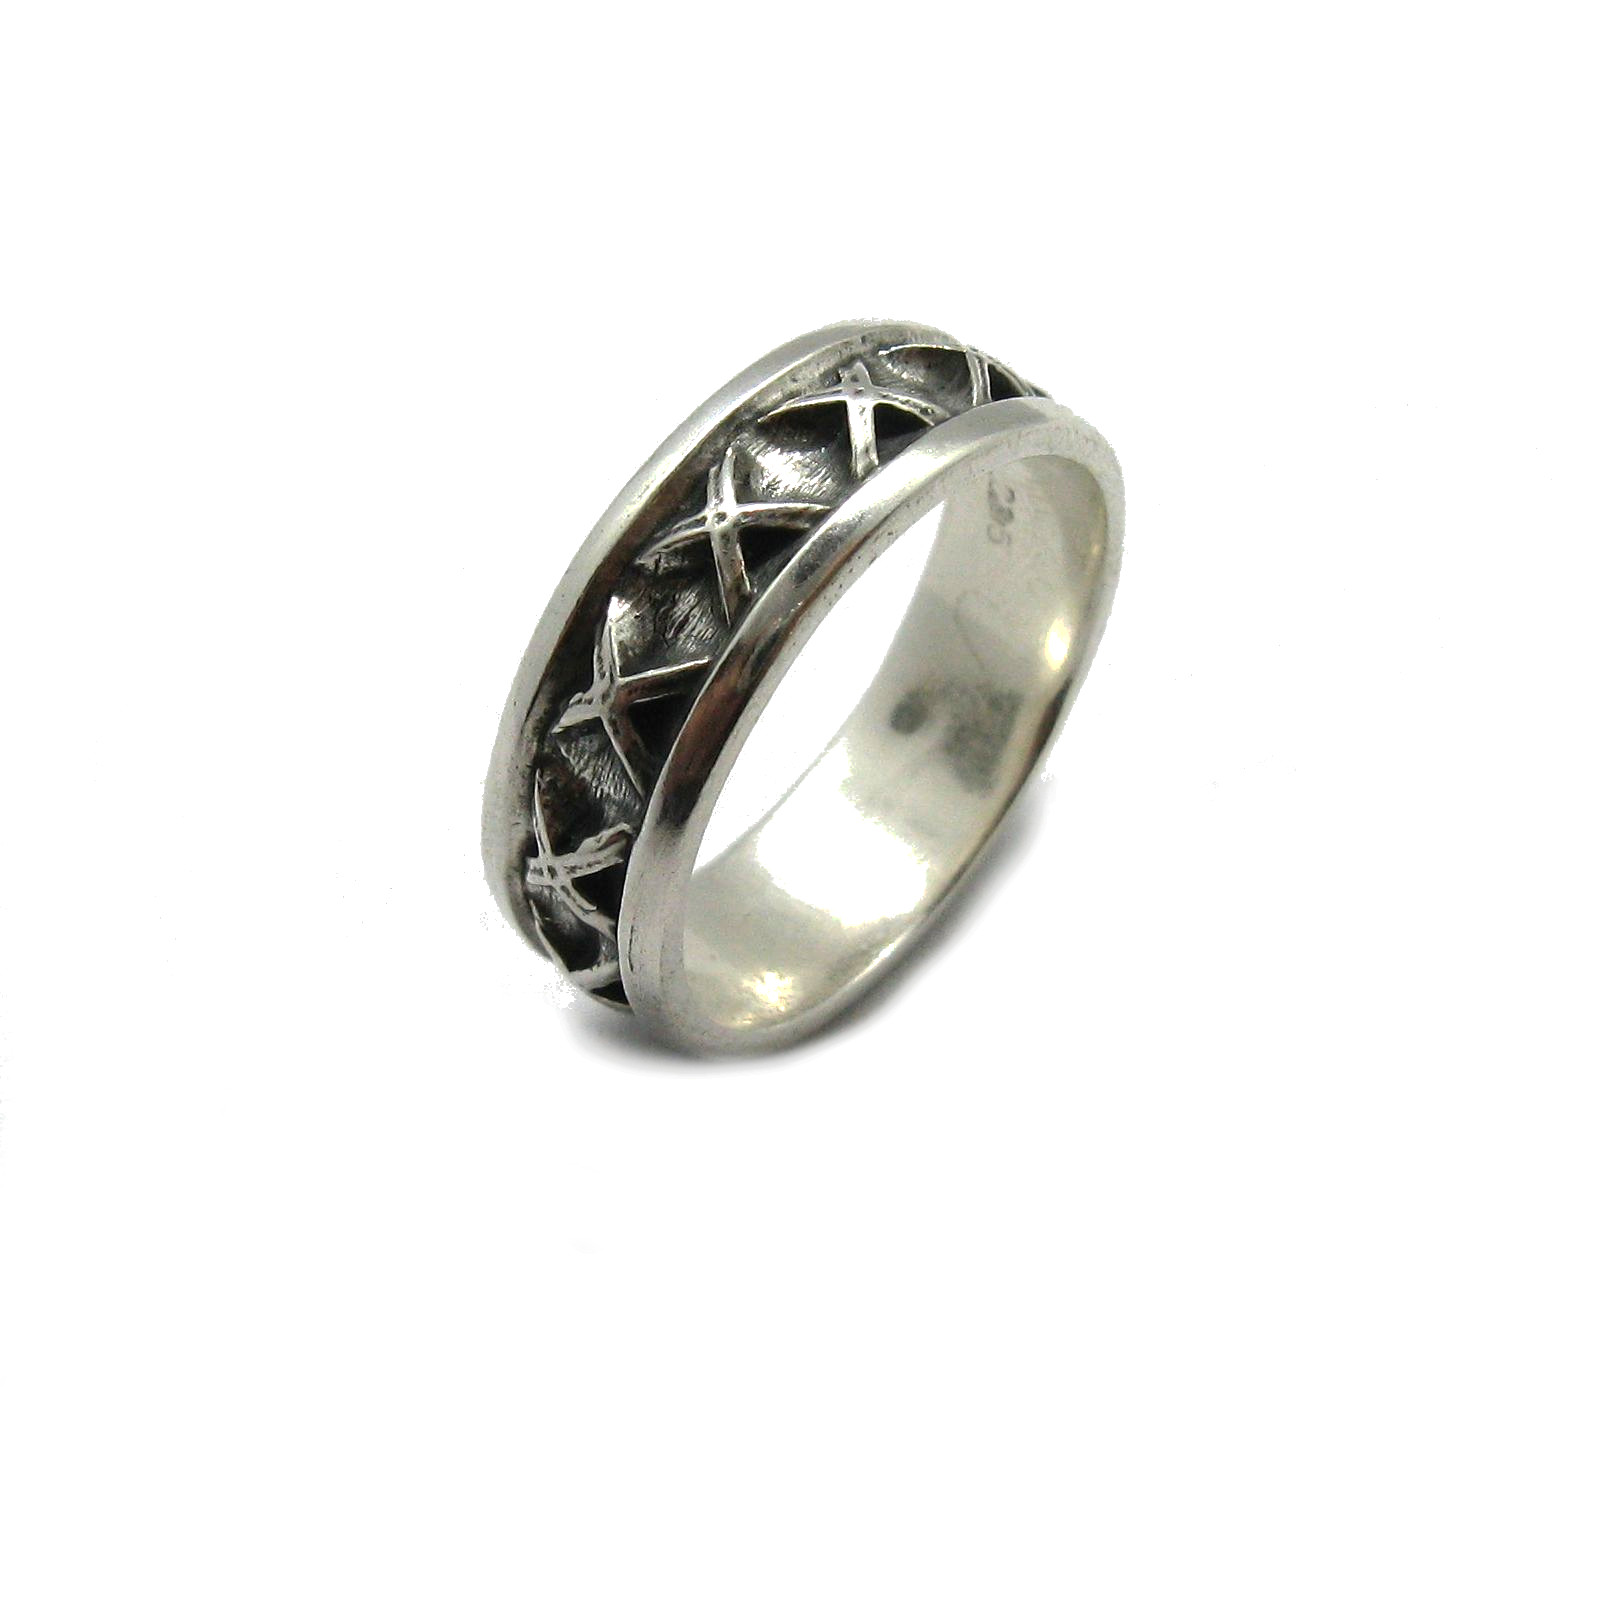 Silver ring - R001857